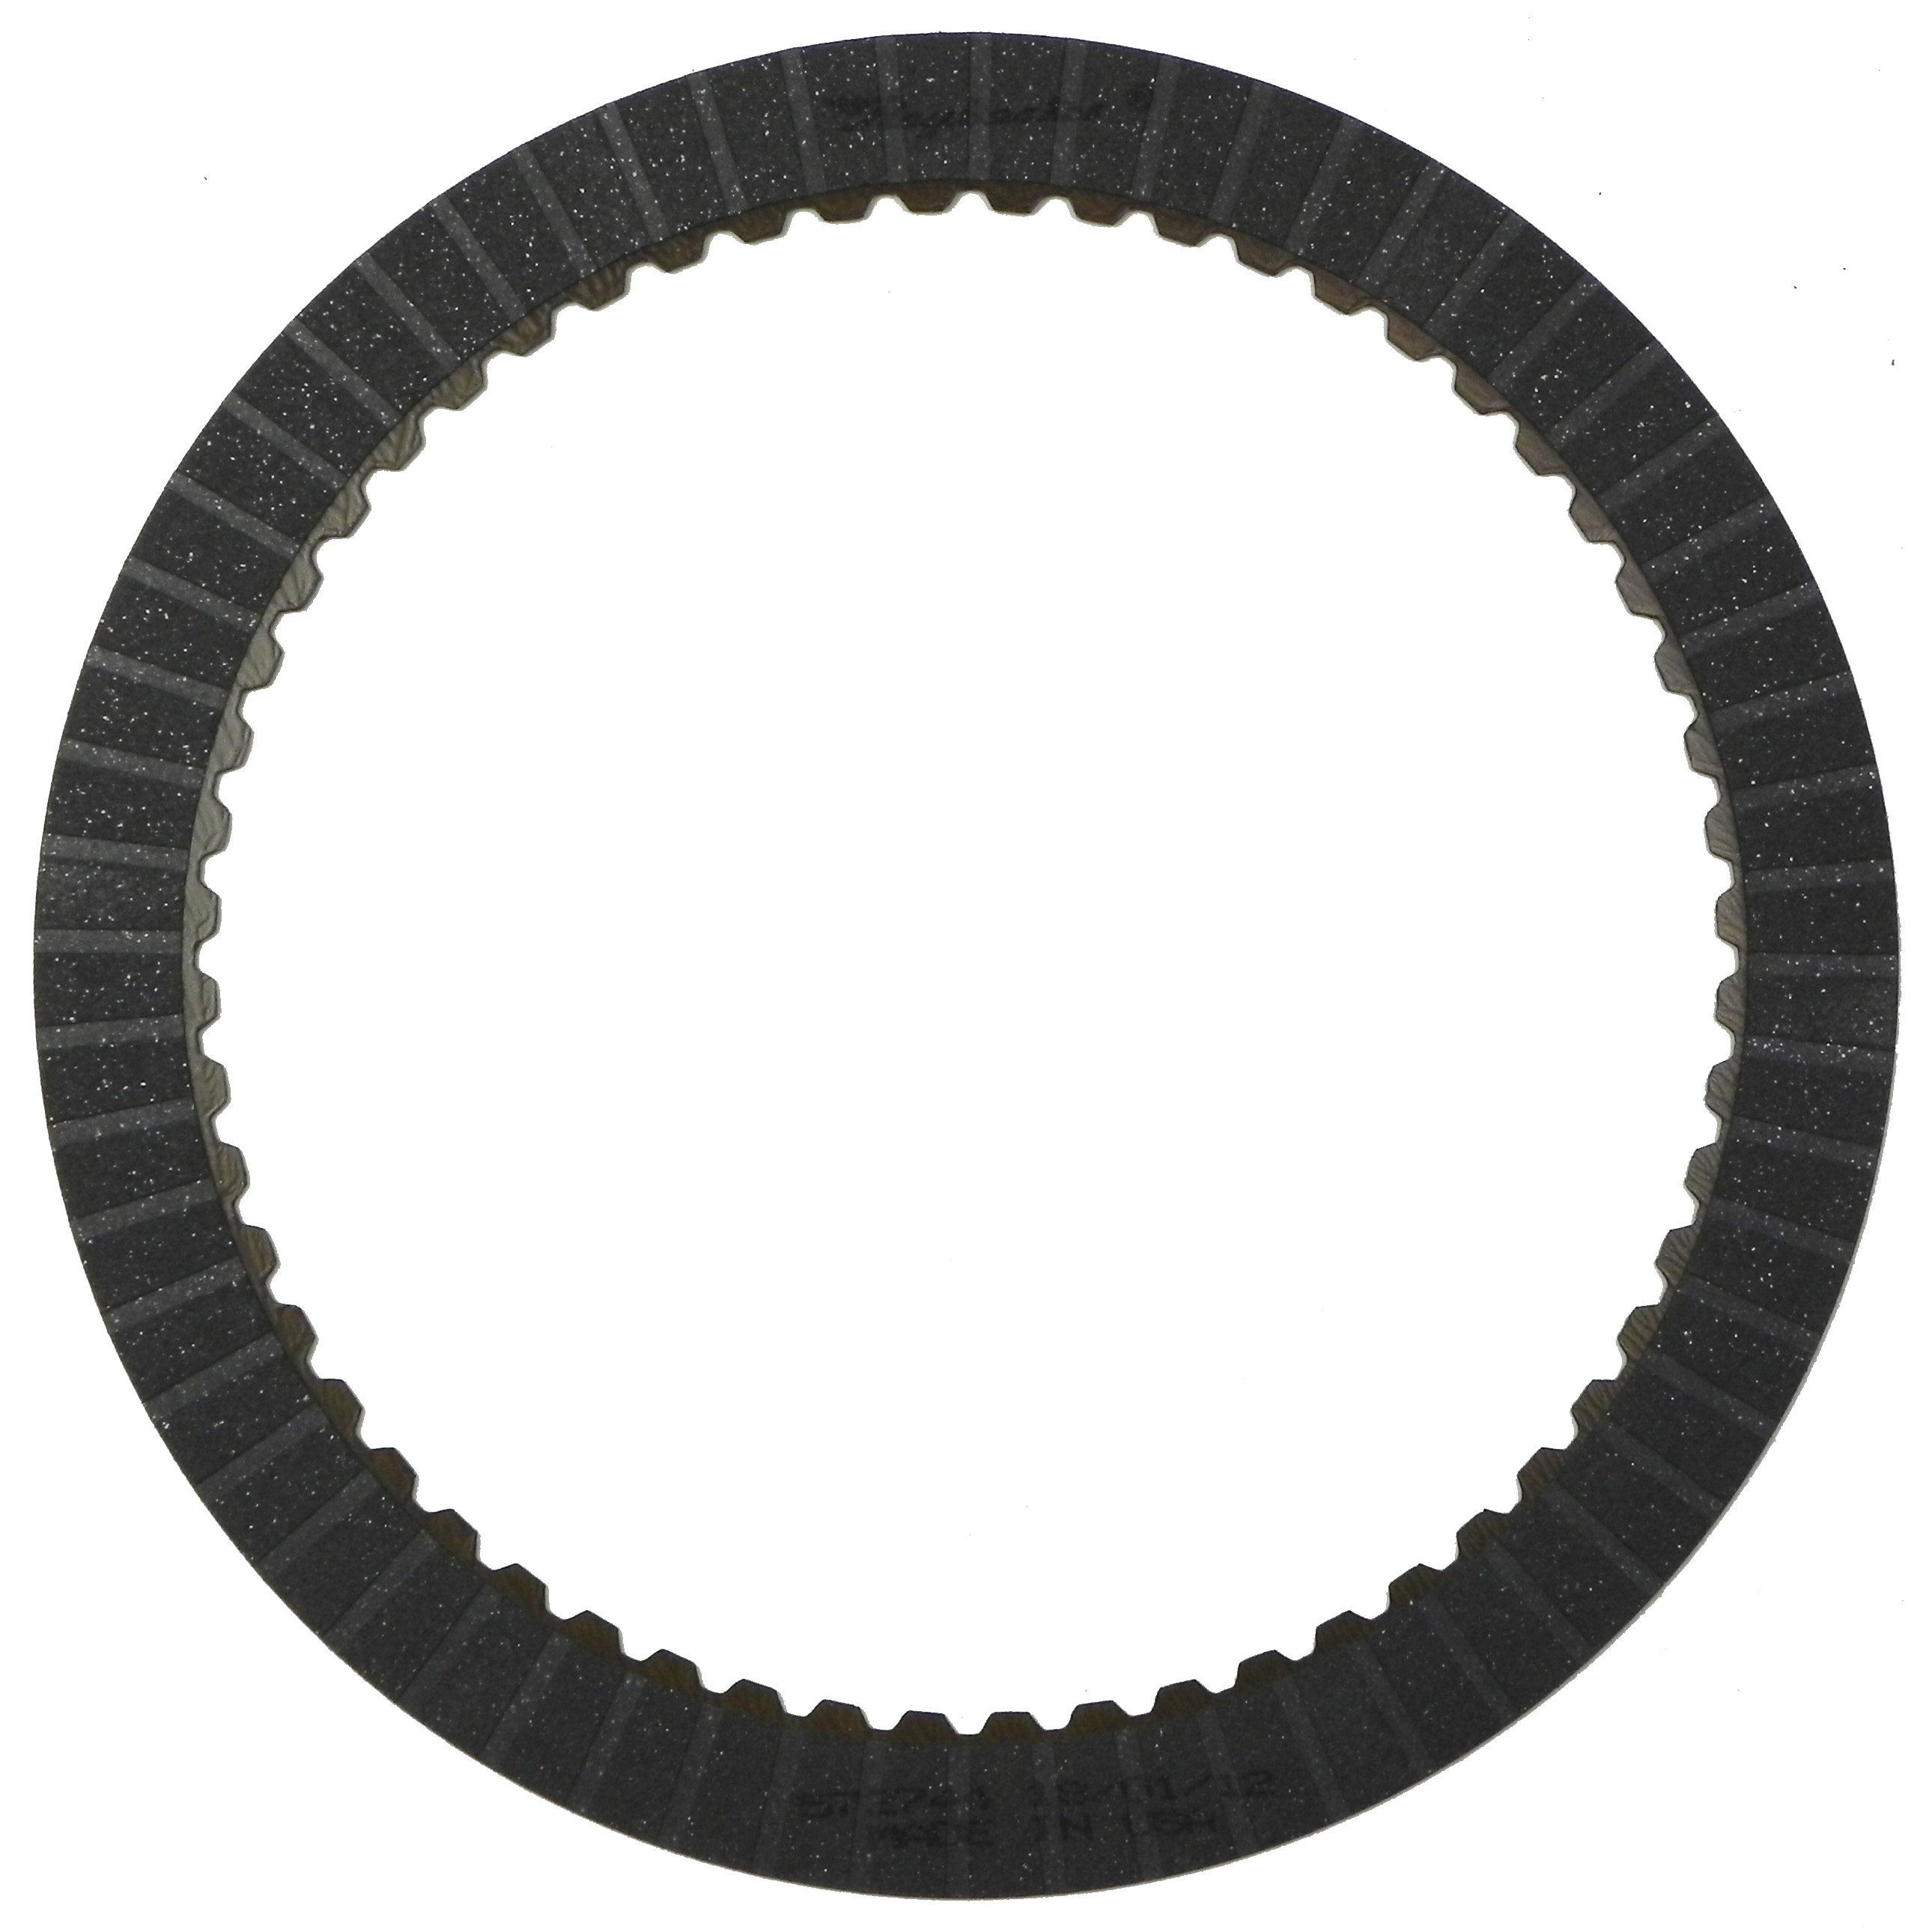 09G / TF60SN, 09K, 09M High Energy Friction Clutch Plate